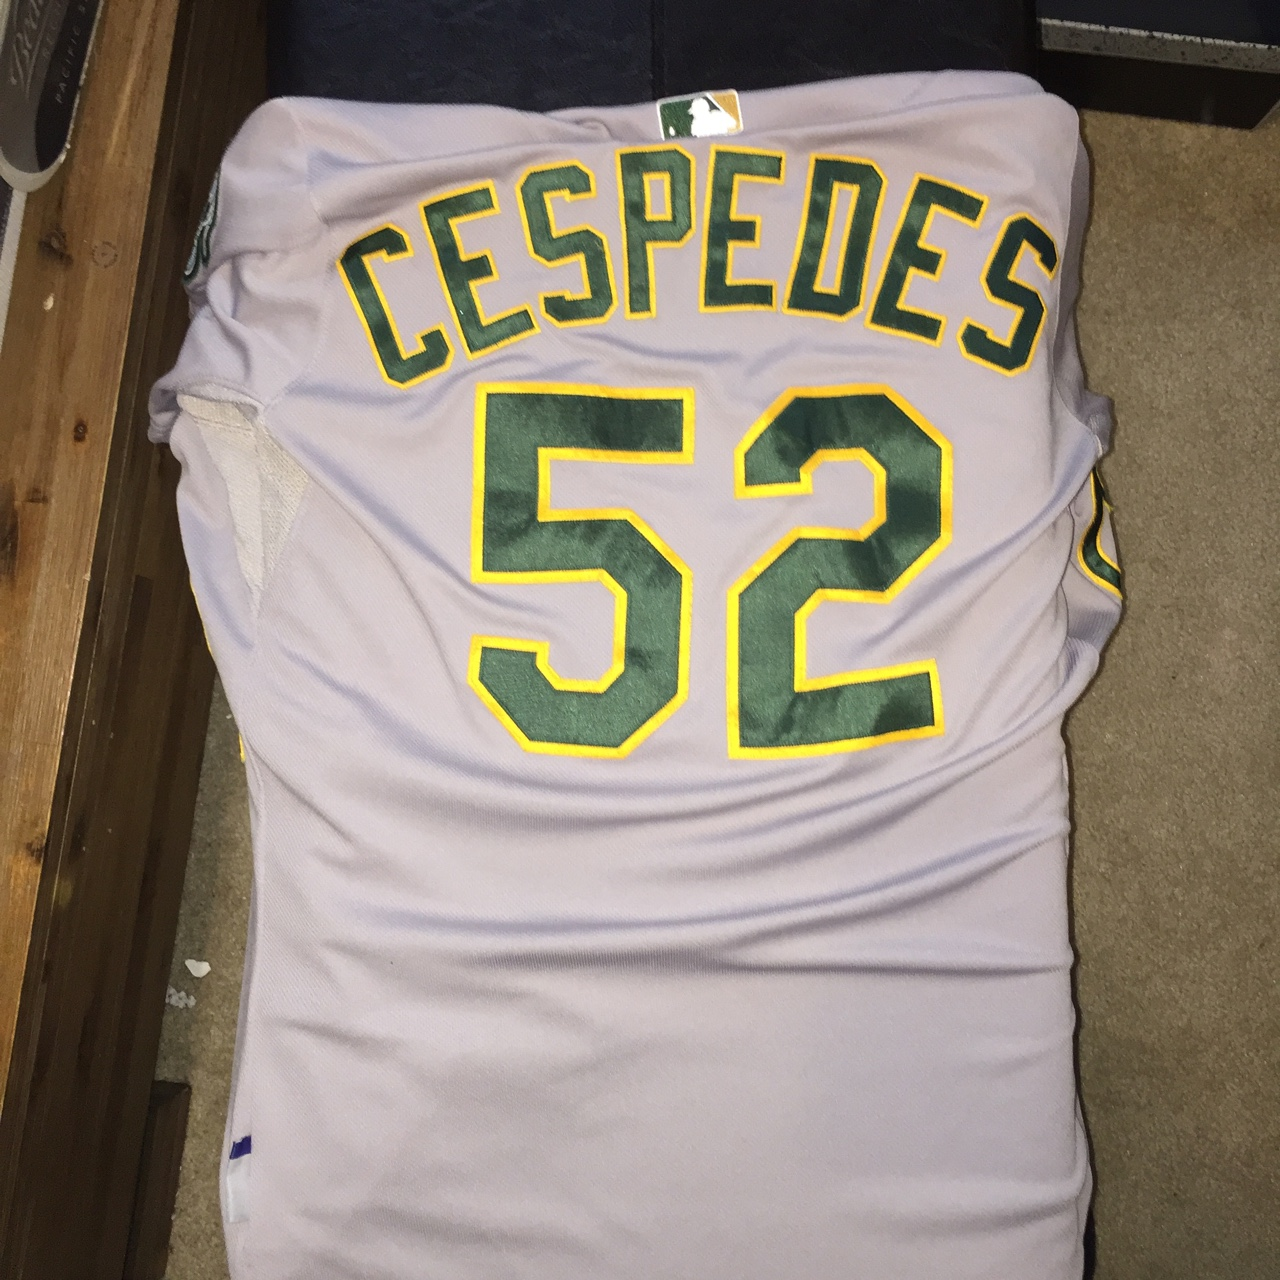 lowest price 05df6 22b73 Oakland A's cespedes jersey authentic cool base... - Depop